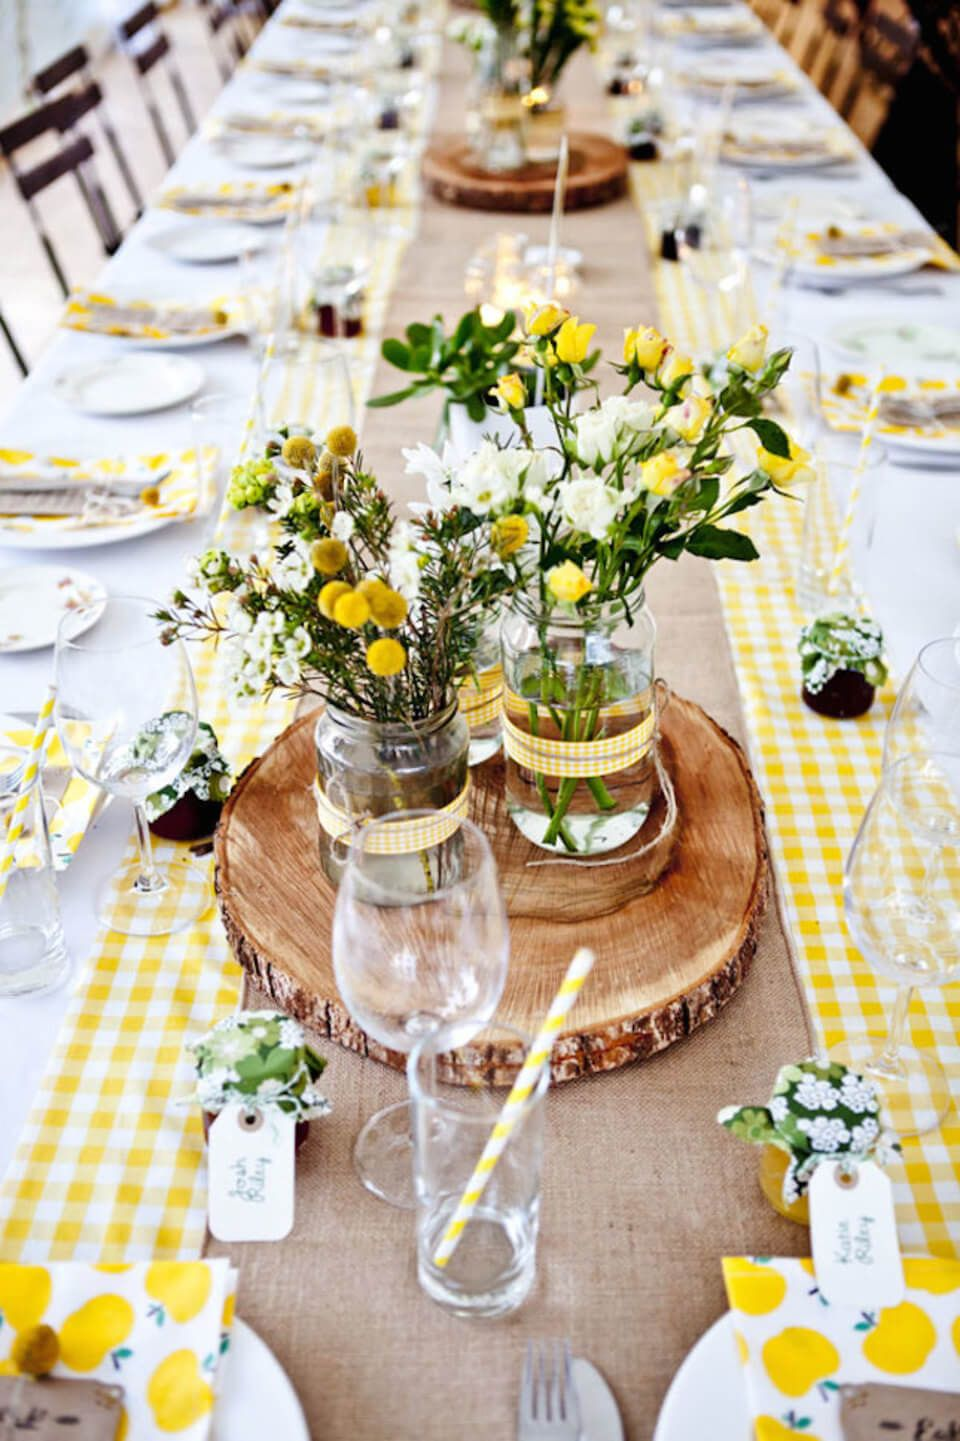 35 Simply Stunning Summer Table Decorations That Will Be Hot This